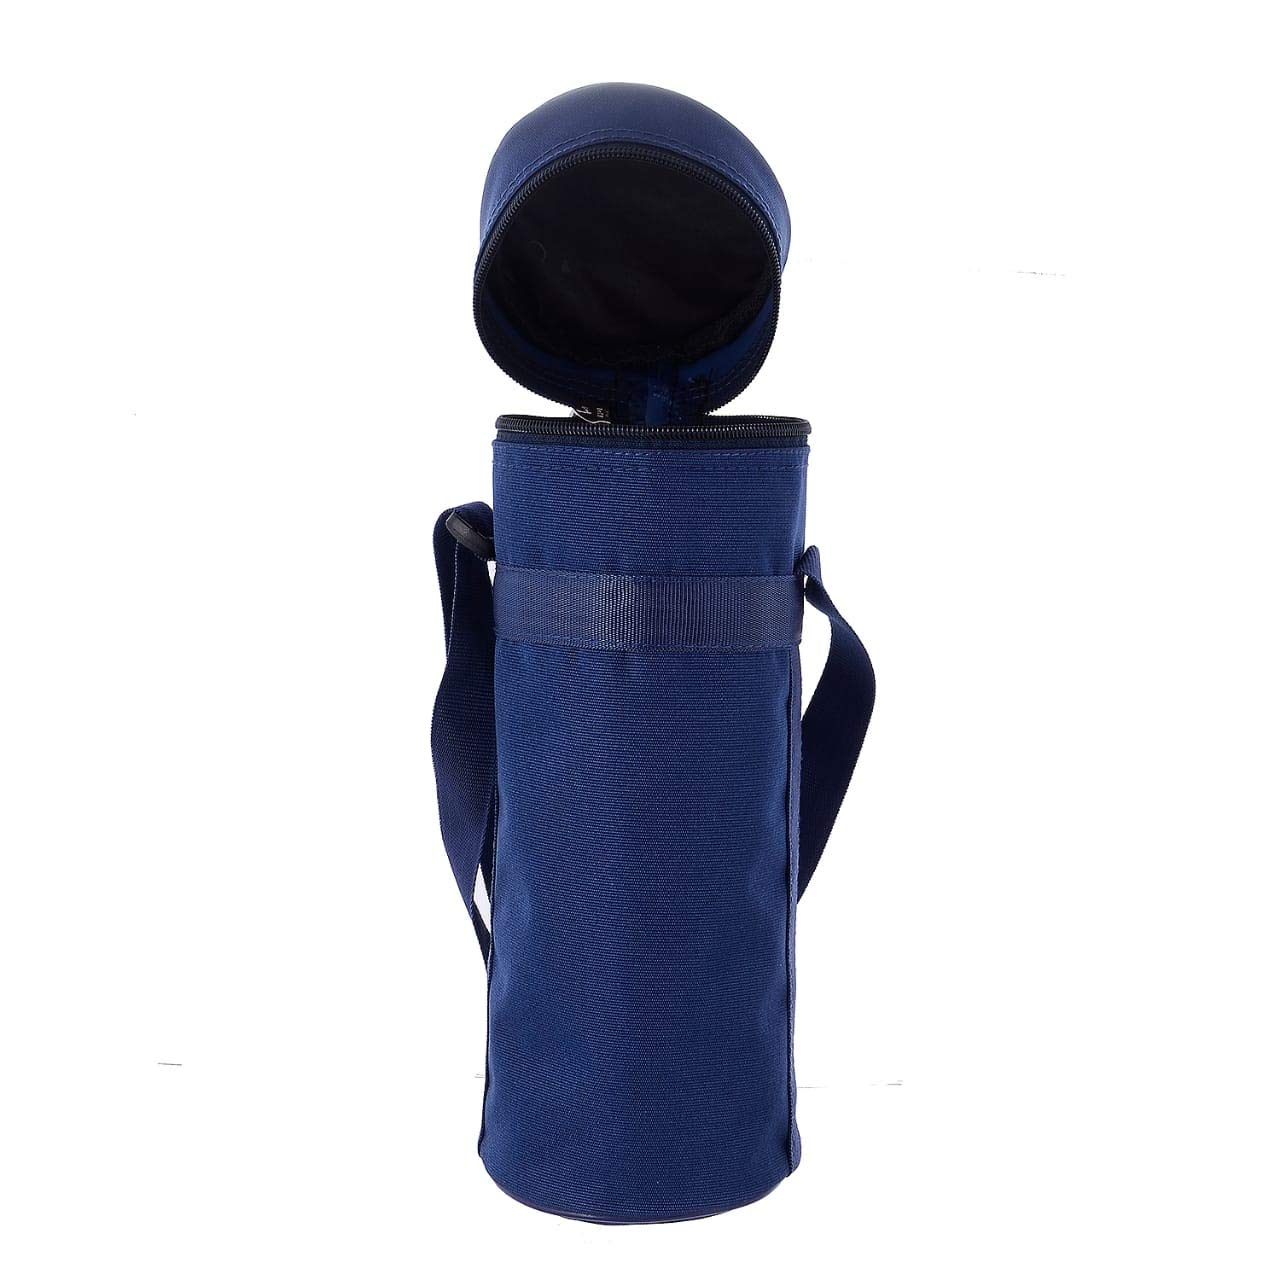 ff6134c8d2 Buy VIHAAN Polyester Round Zipper Insulated Bottle Cover (Blue, 1 L) Online  at Low Prices in India - Amazon.in